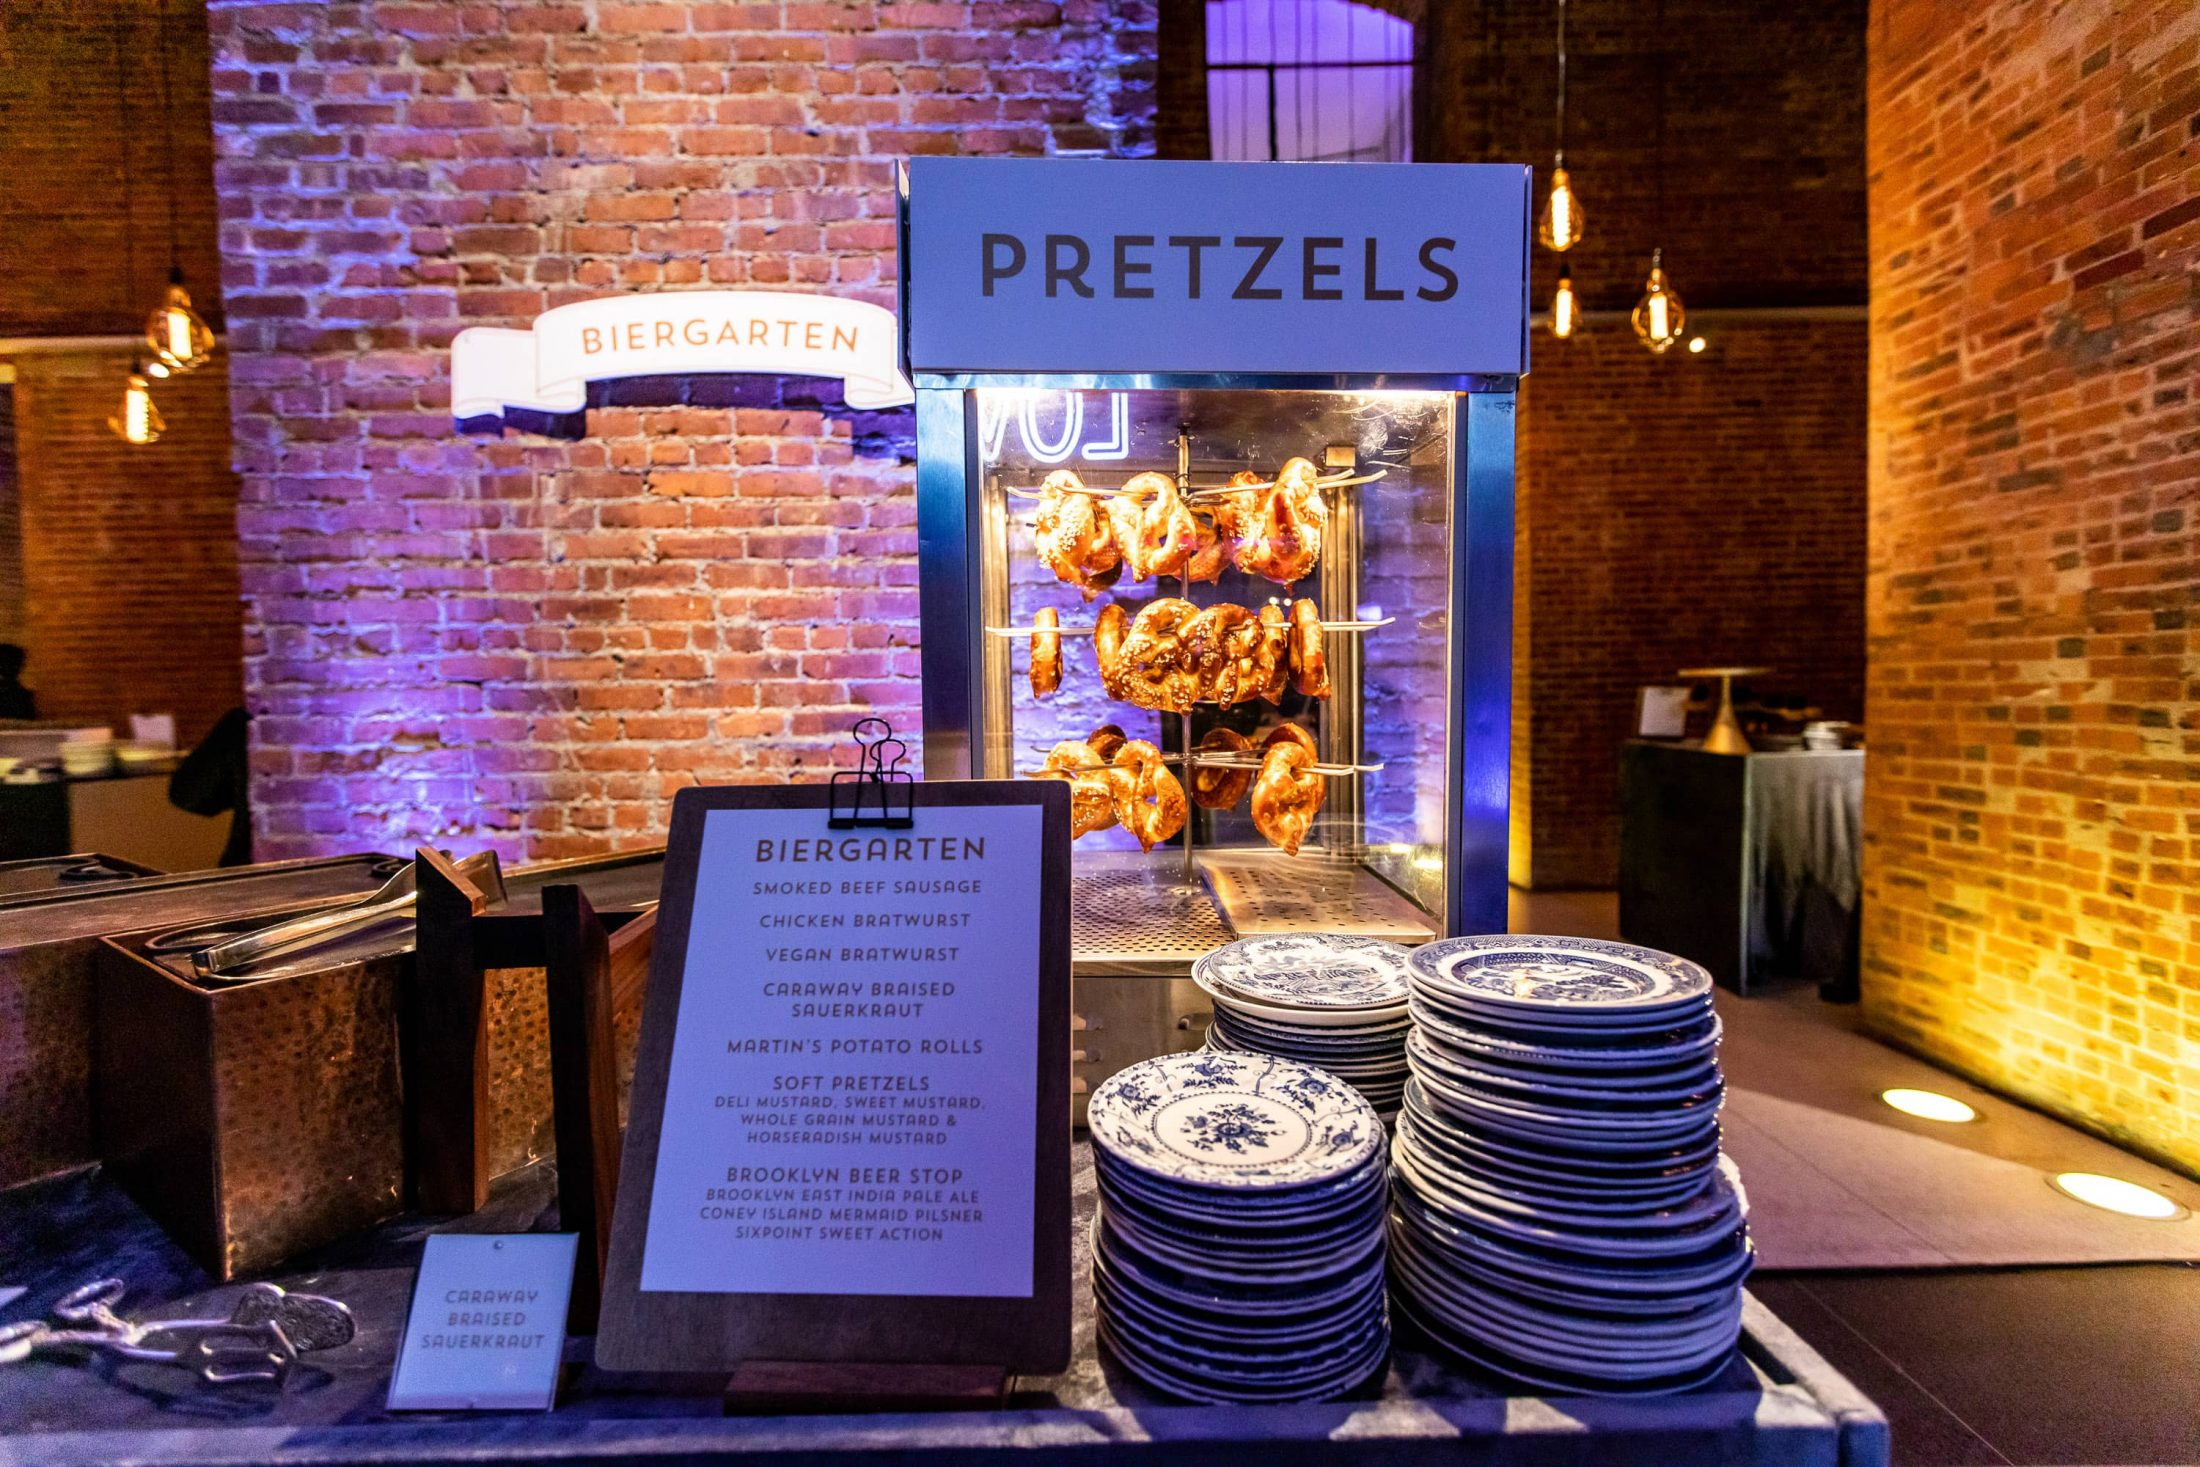 Pretzel station at this Brooklyn Museum rehearsal dinner in NYC | Photo by Gruber Photo